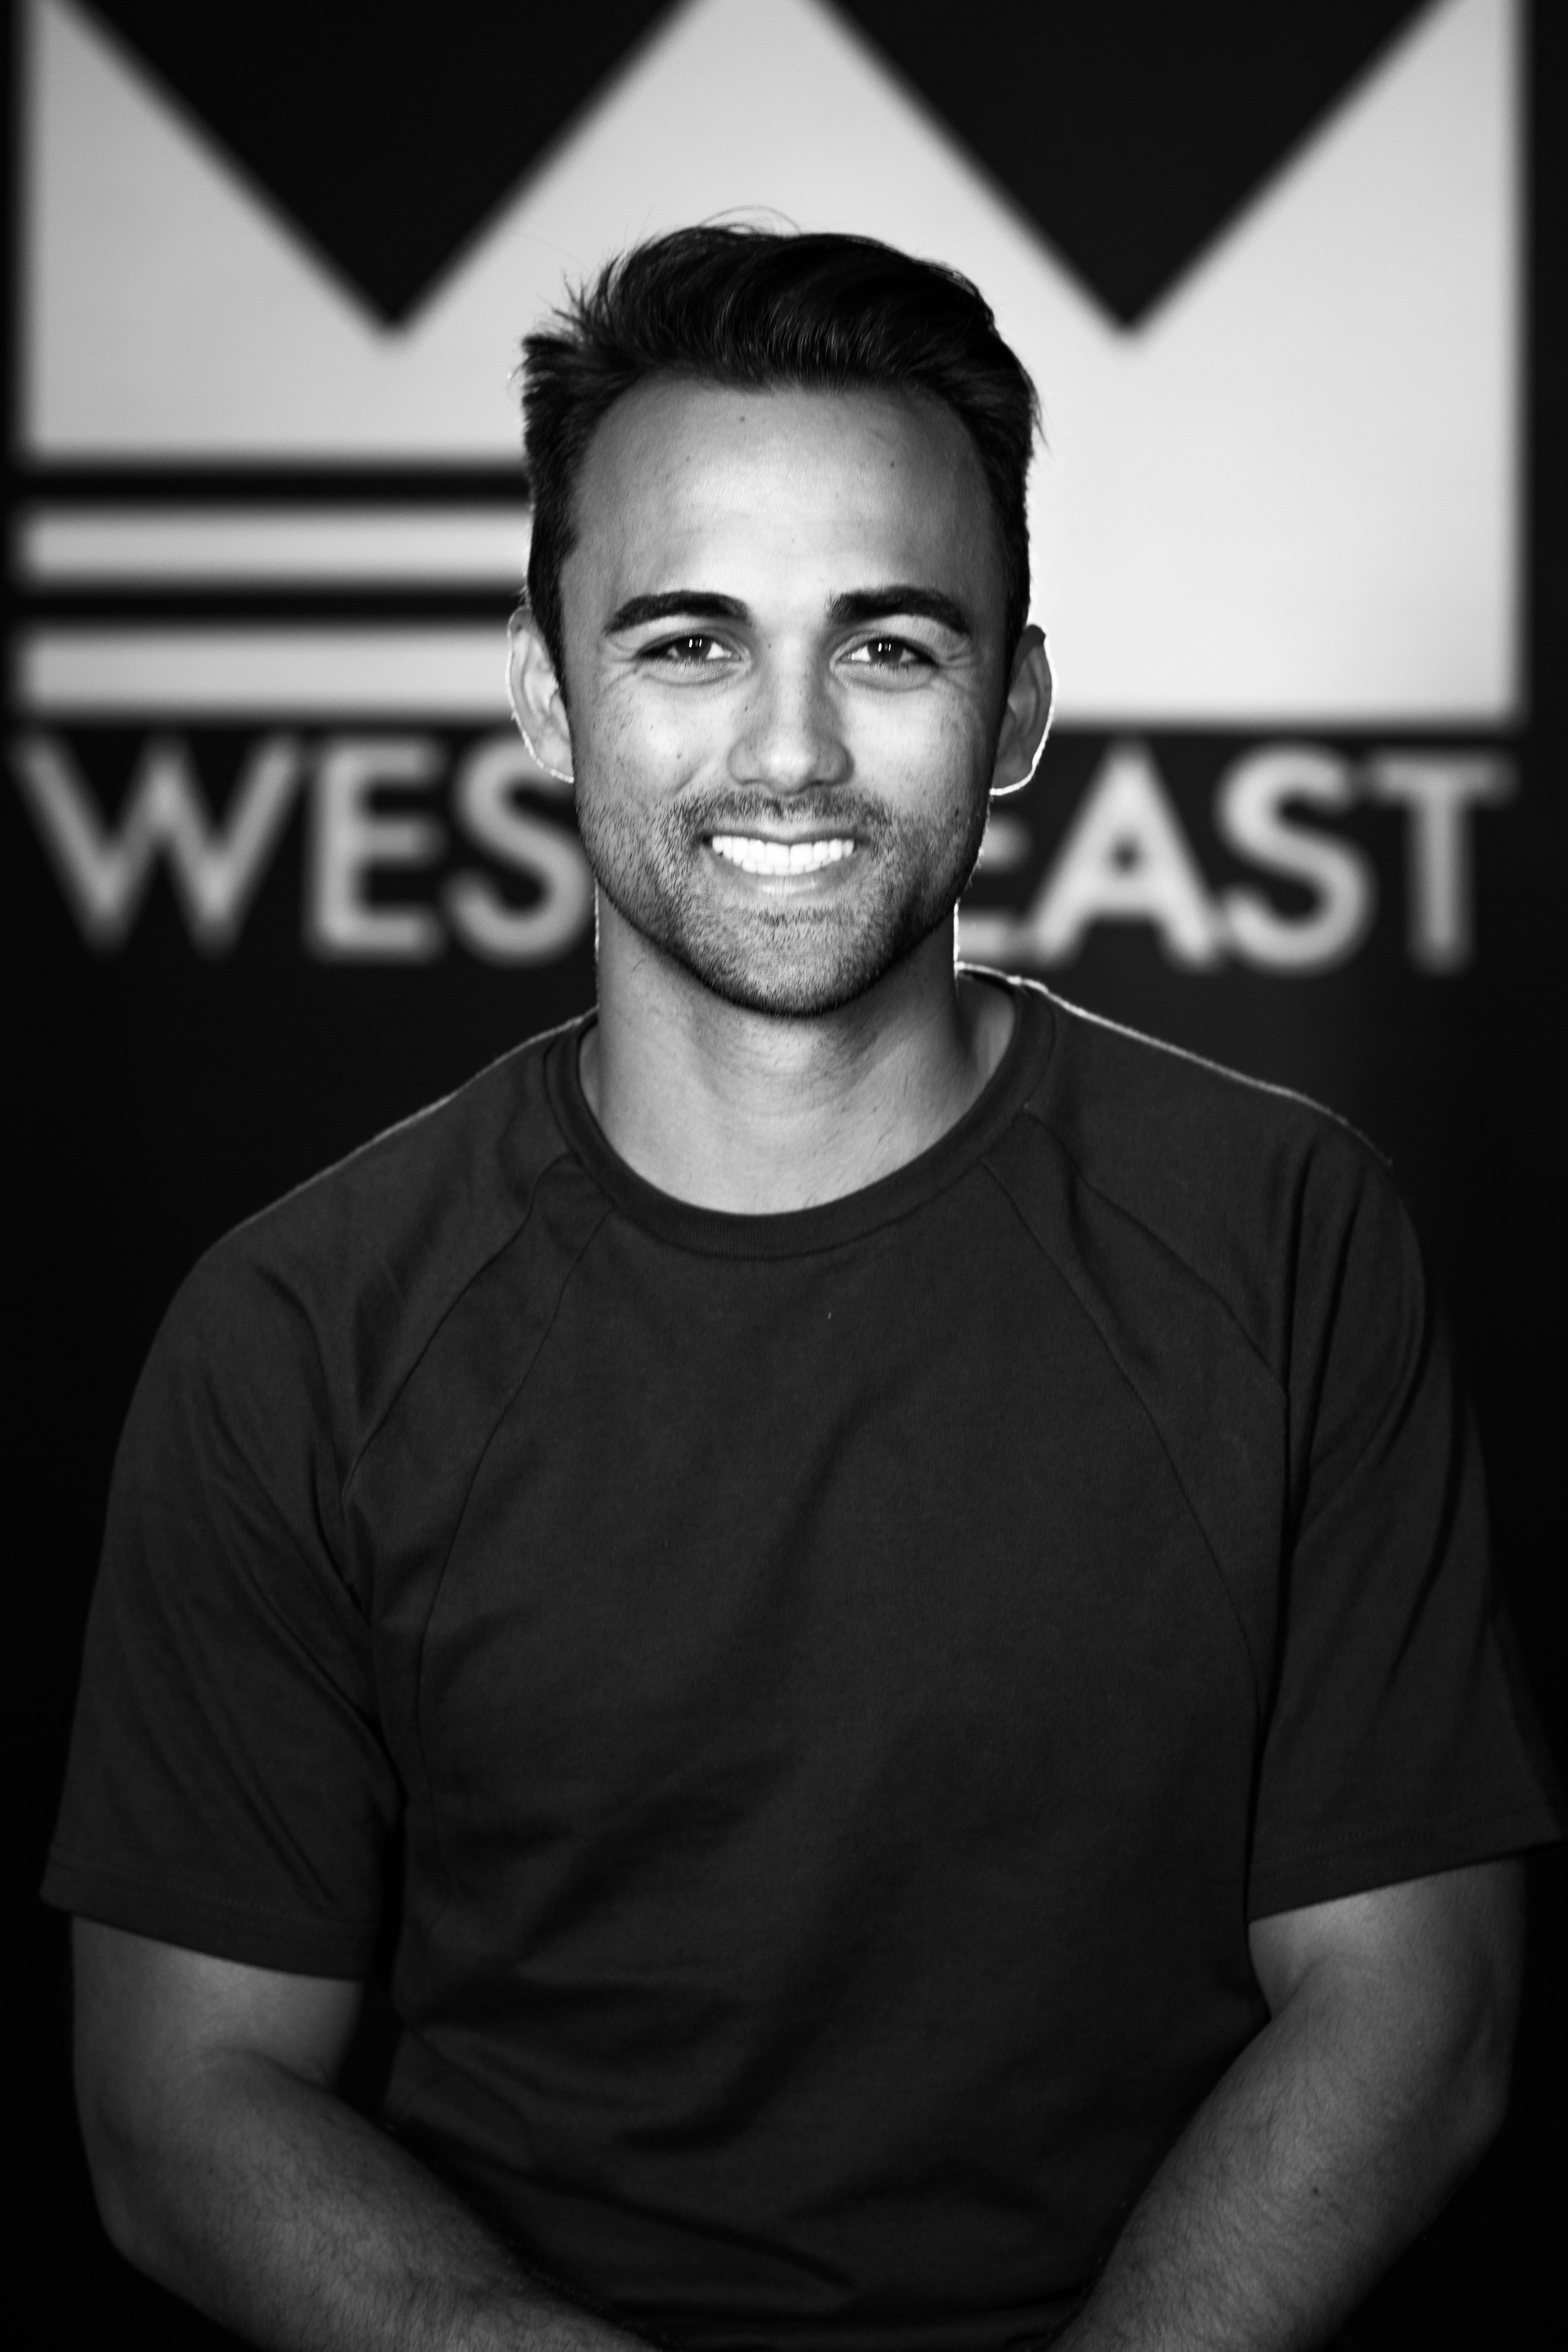 Creative Director & Head of Production for West2East.  Daniel has had a camera in his hand since he was 10 years old and has loved telling stories through his lens ever since.  Before he was with West2East, he spent 3 years working for NBC Sports covering the 2016 Olympics, Super Bowl XLIX, 2016 Stanley Cup Finals, and won 4 Emmys as an associate producer on Sunday Night Football.  What's most important to Daniel are the 3 F's, Faith, Family and Football (and sometimes food).